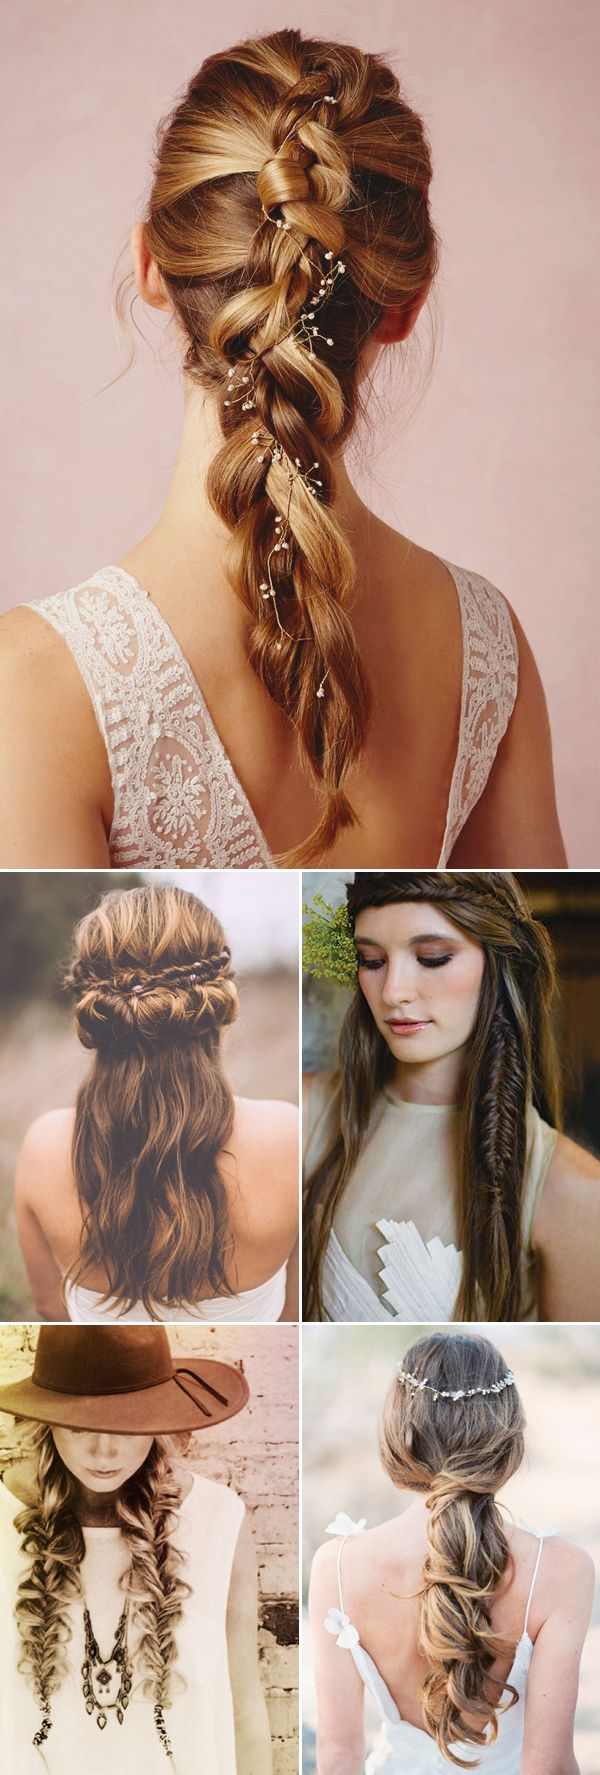 70 best braids. images on pinterest | hairstyles, braids and hair